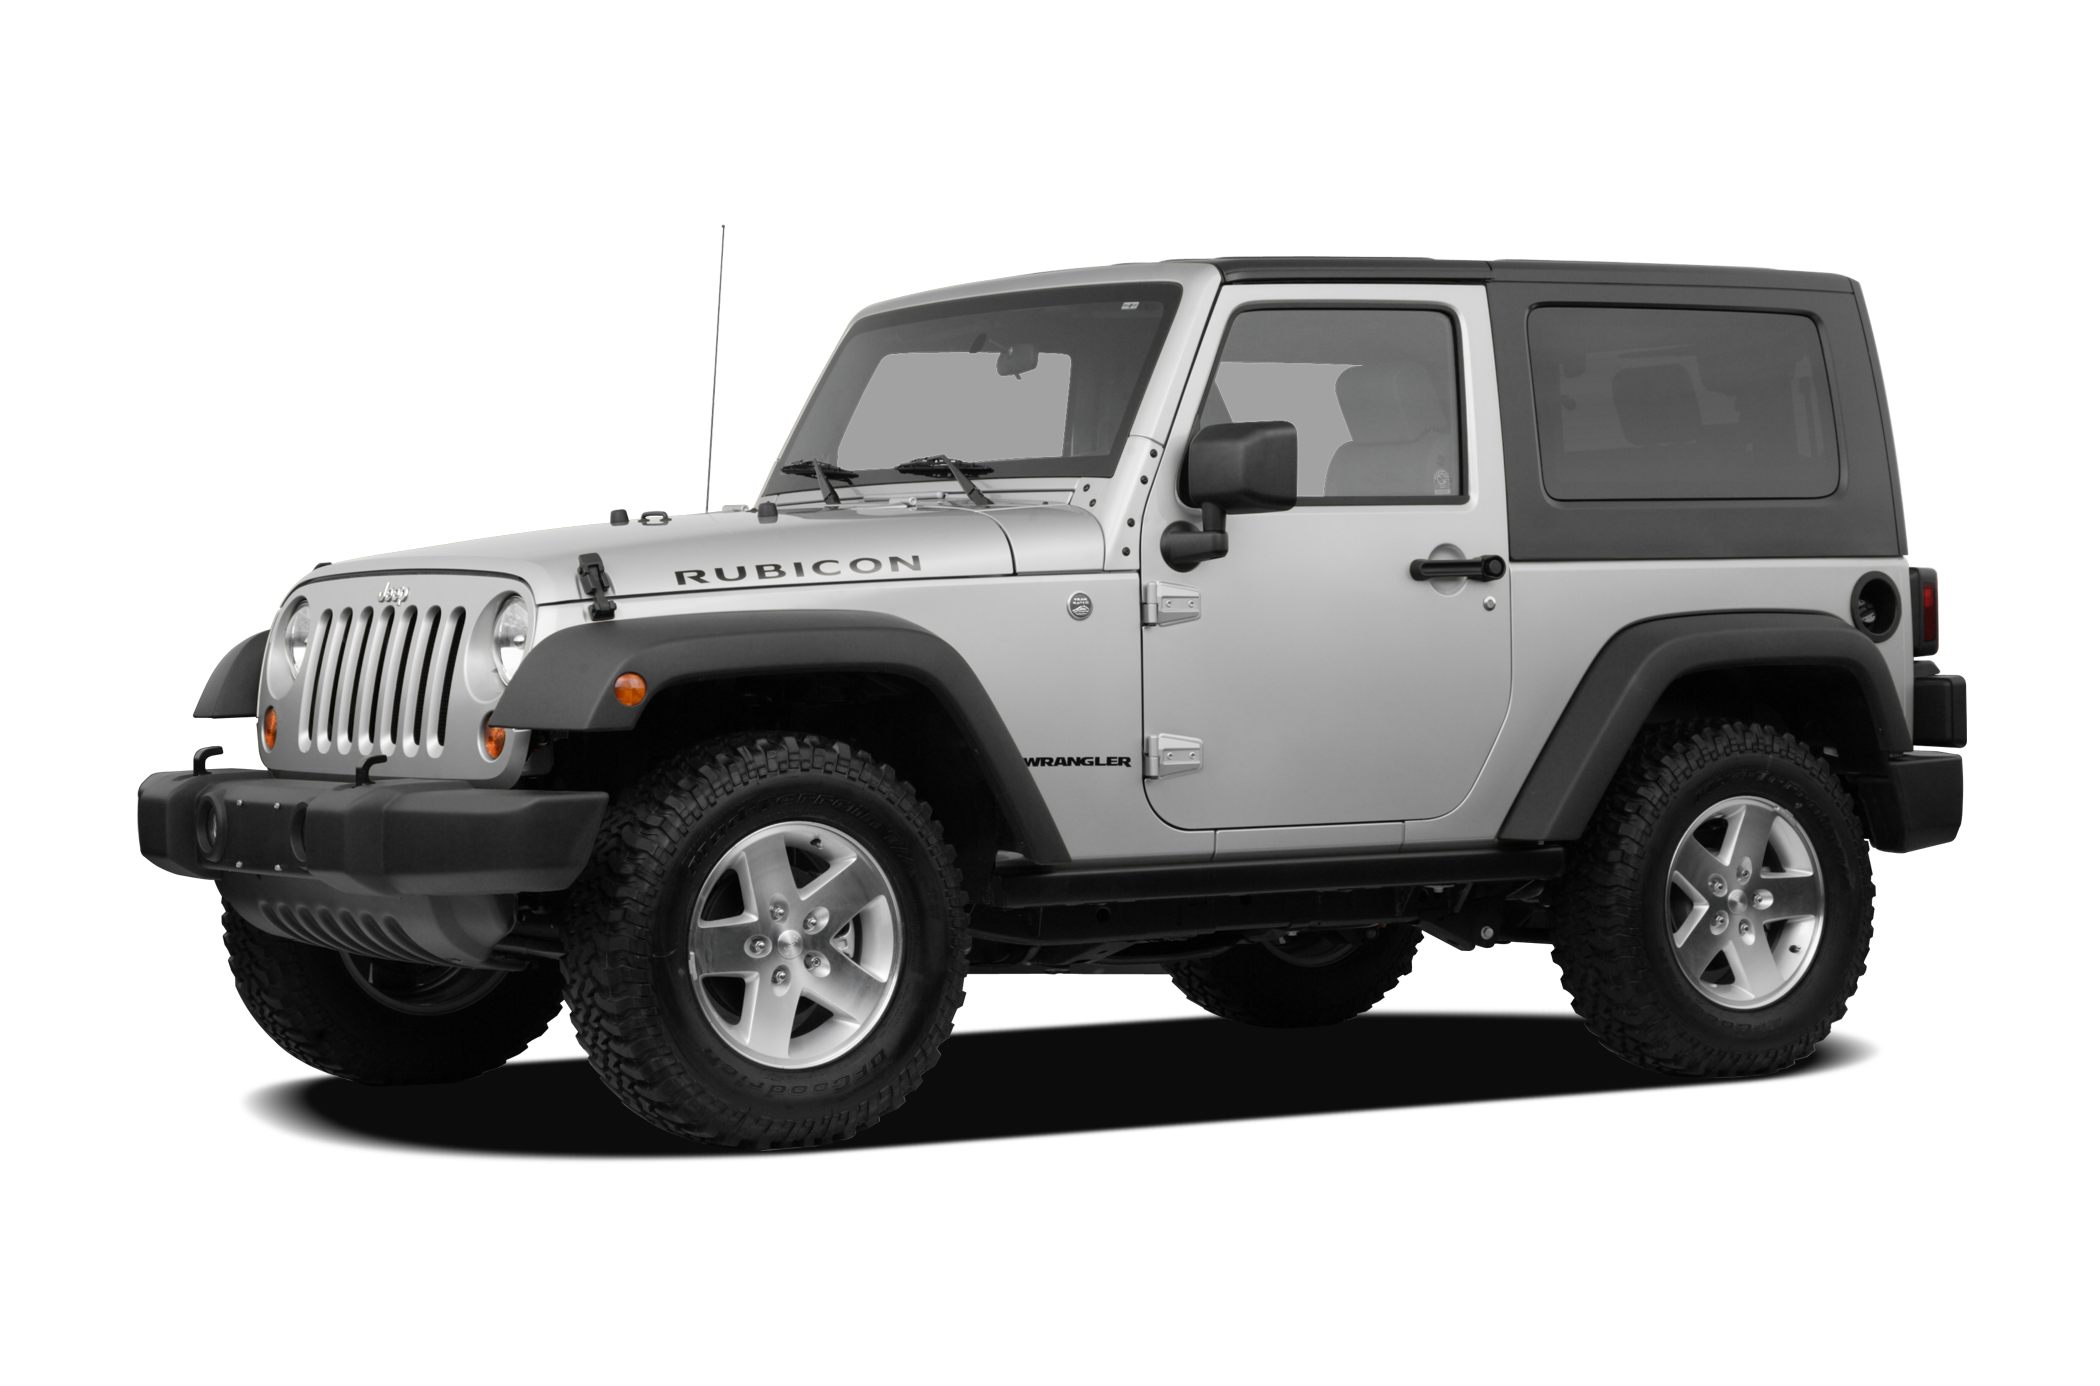 2008 Jeep Wrangler Sahara SUV for sale in Fairfax for $18,747 with 94,398 miles